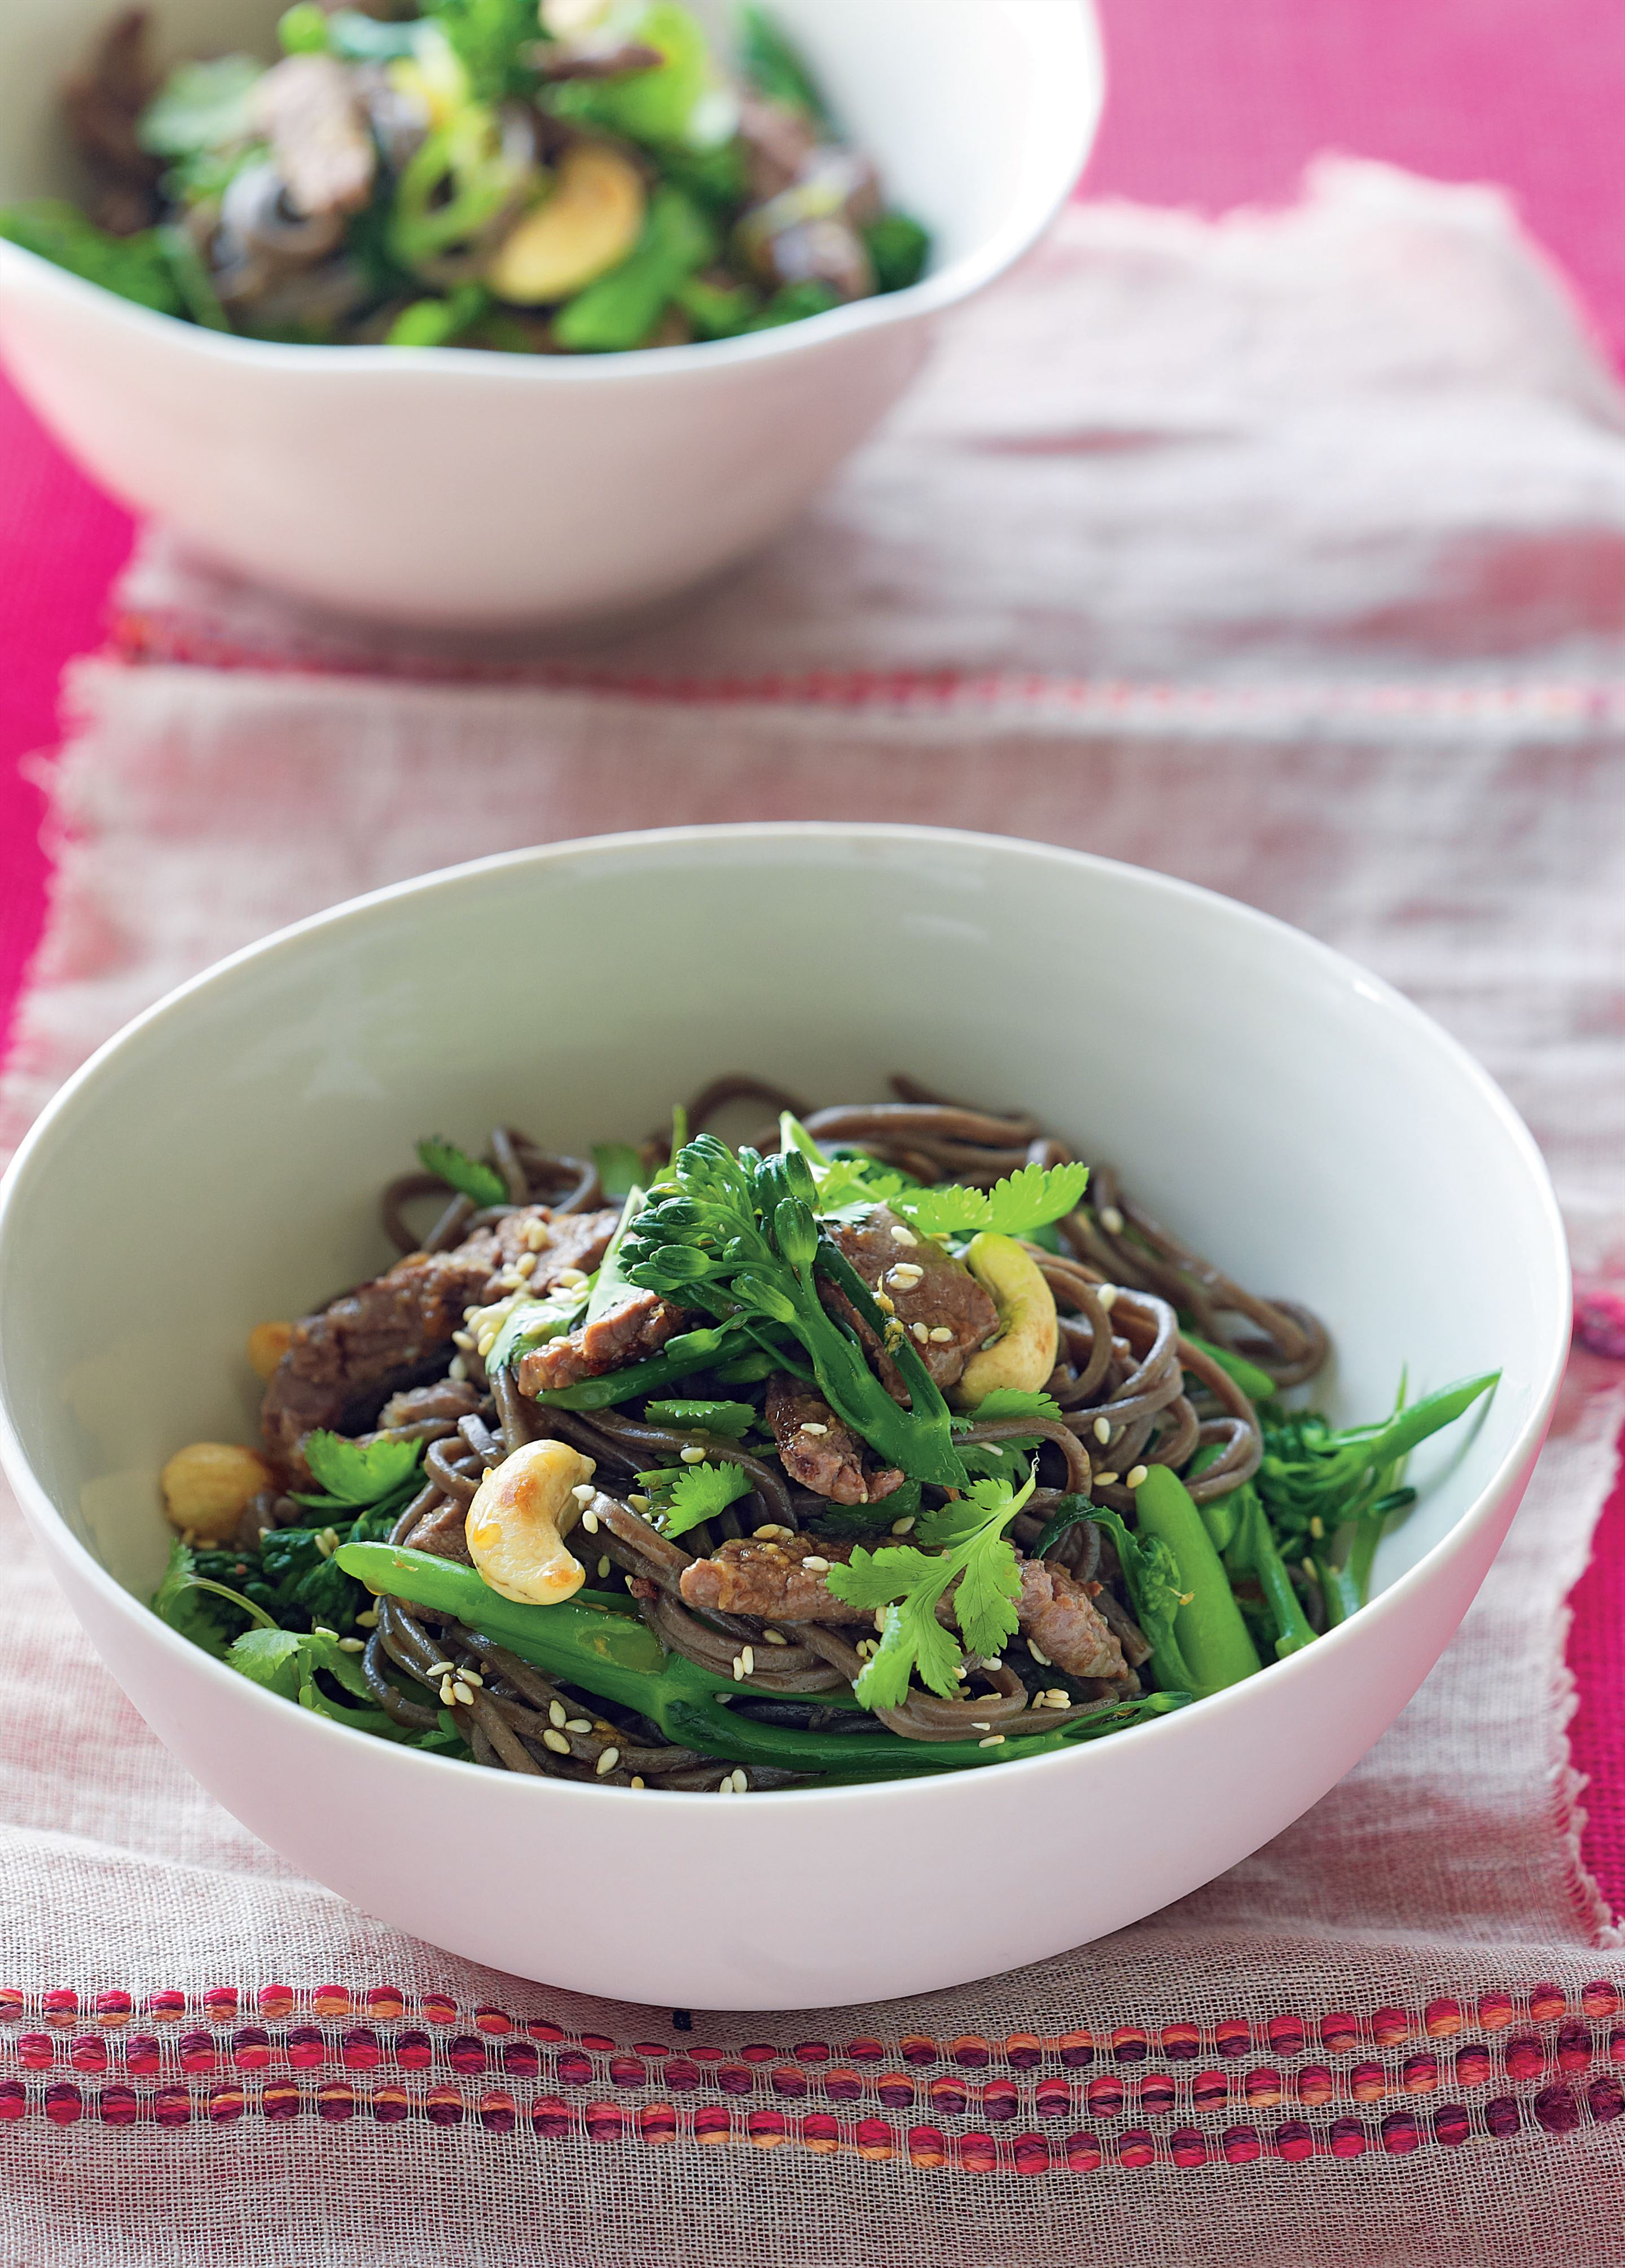 Stir-fried ginger beef with broccolini and cashews